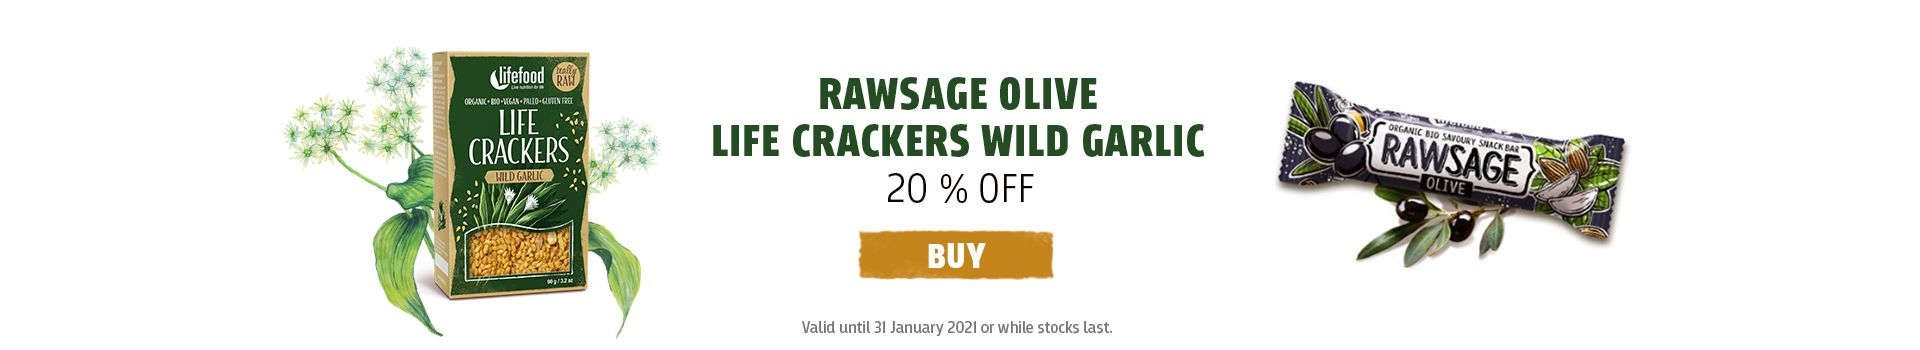 Rawsage + Crackers